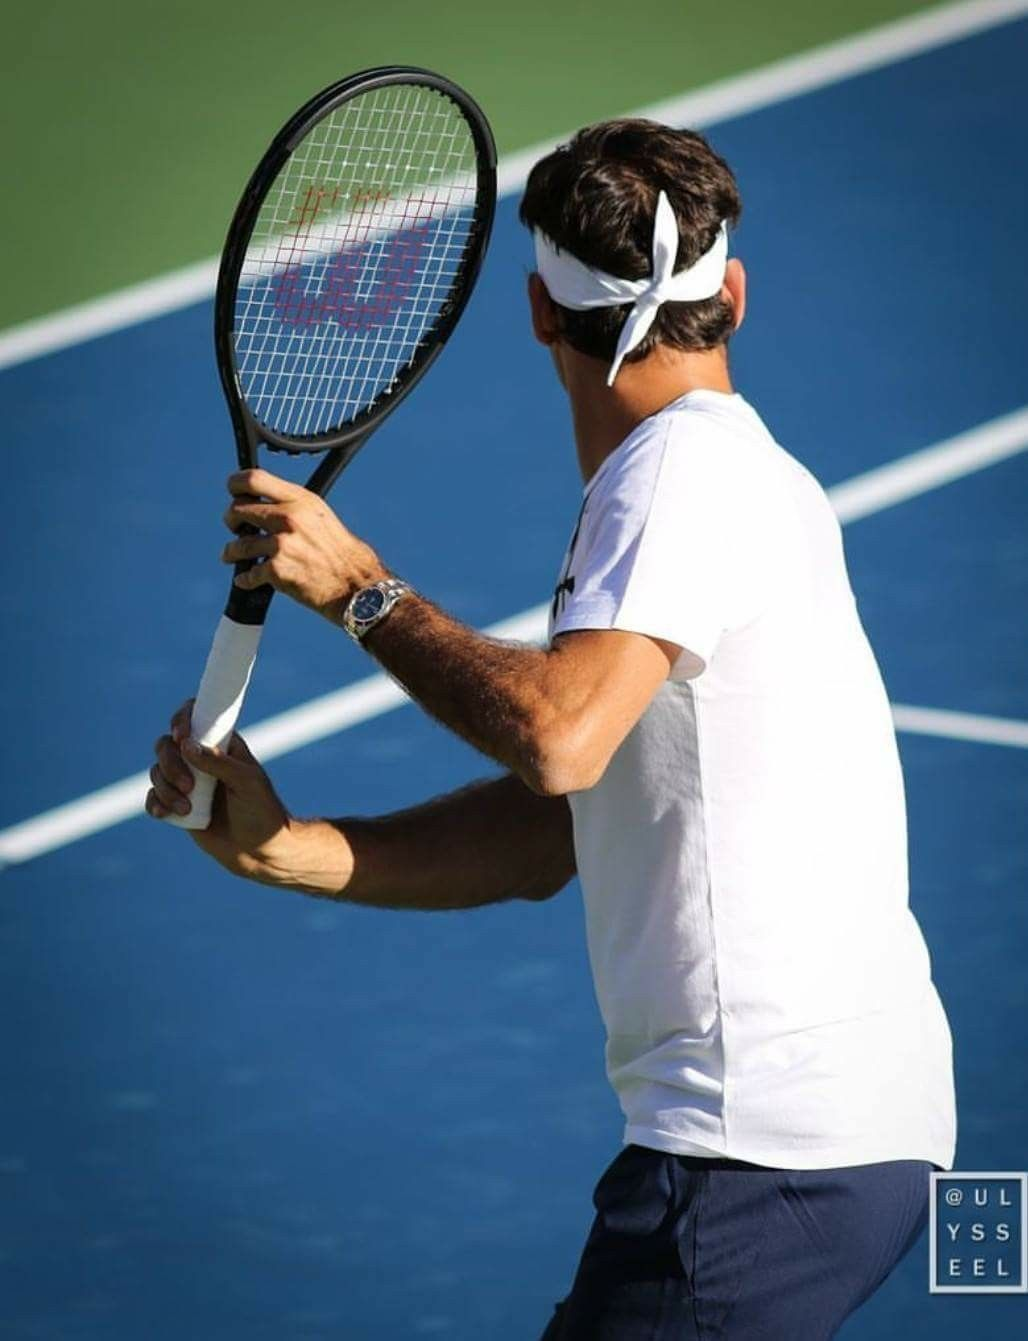 Pin By Maui Blue On 1 Roger Federer Mr Perfect G O A T King Of The Courts Master Of Poetry In Motion Tennis Forehand Tennis Legends Tennis Techniques